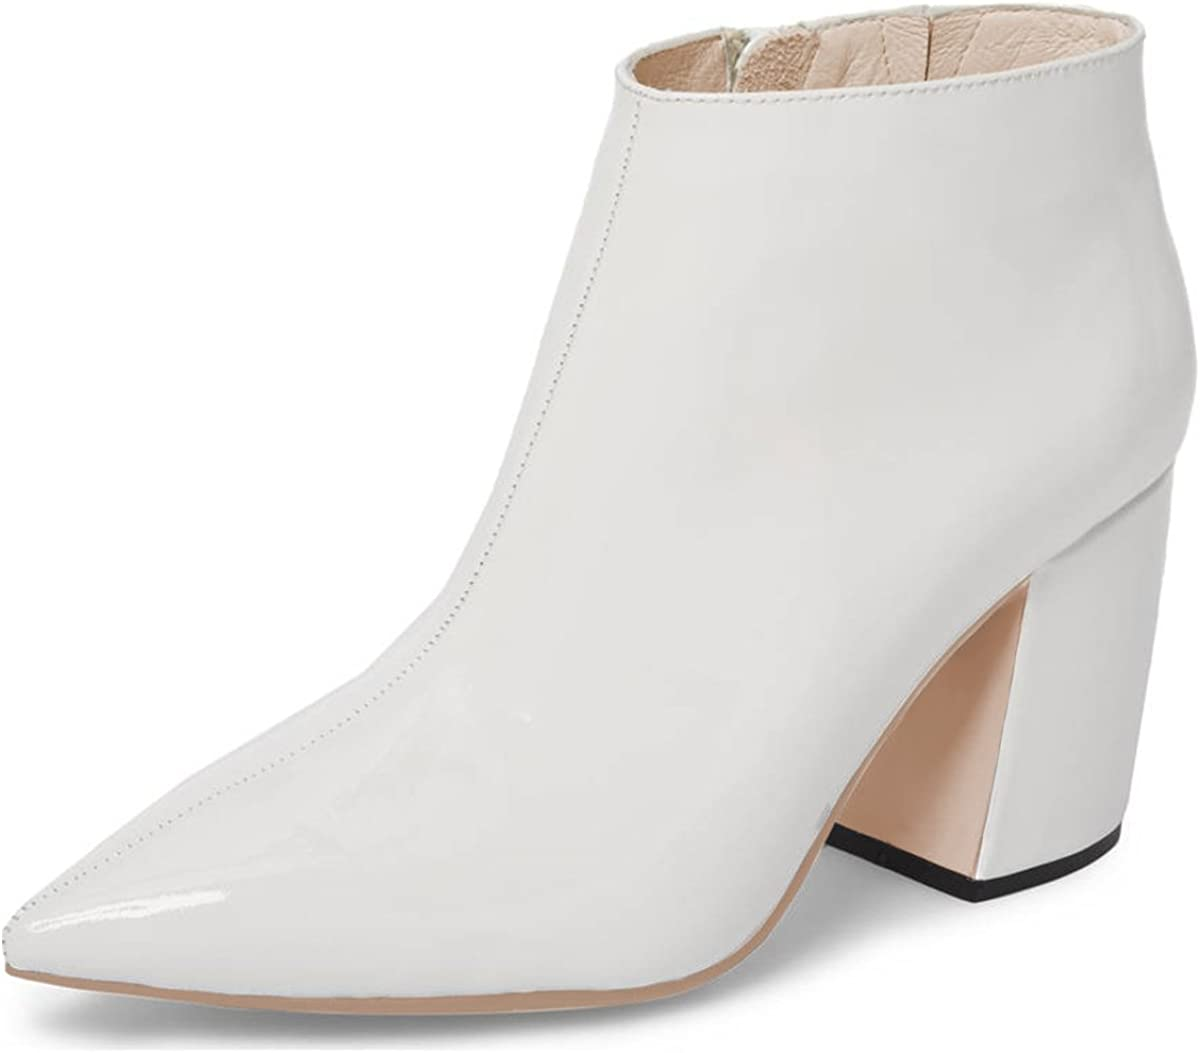 XYD Women Memphis Mall Vegan Leather Pointed Toe Portland Mall Heel Ankle Zippe Boots Block